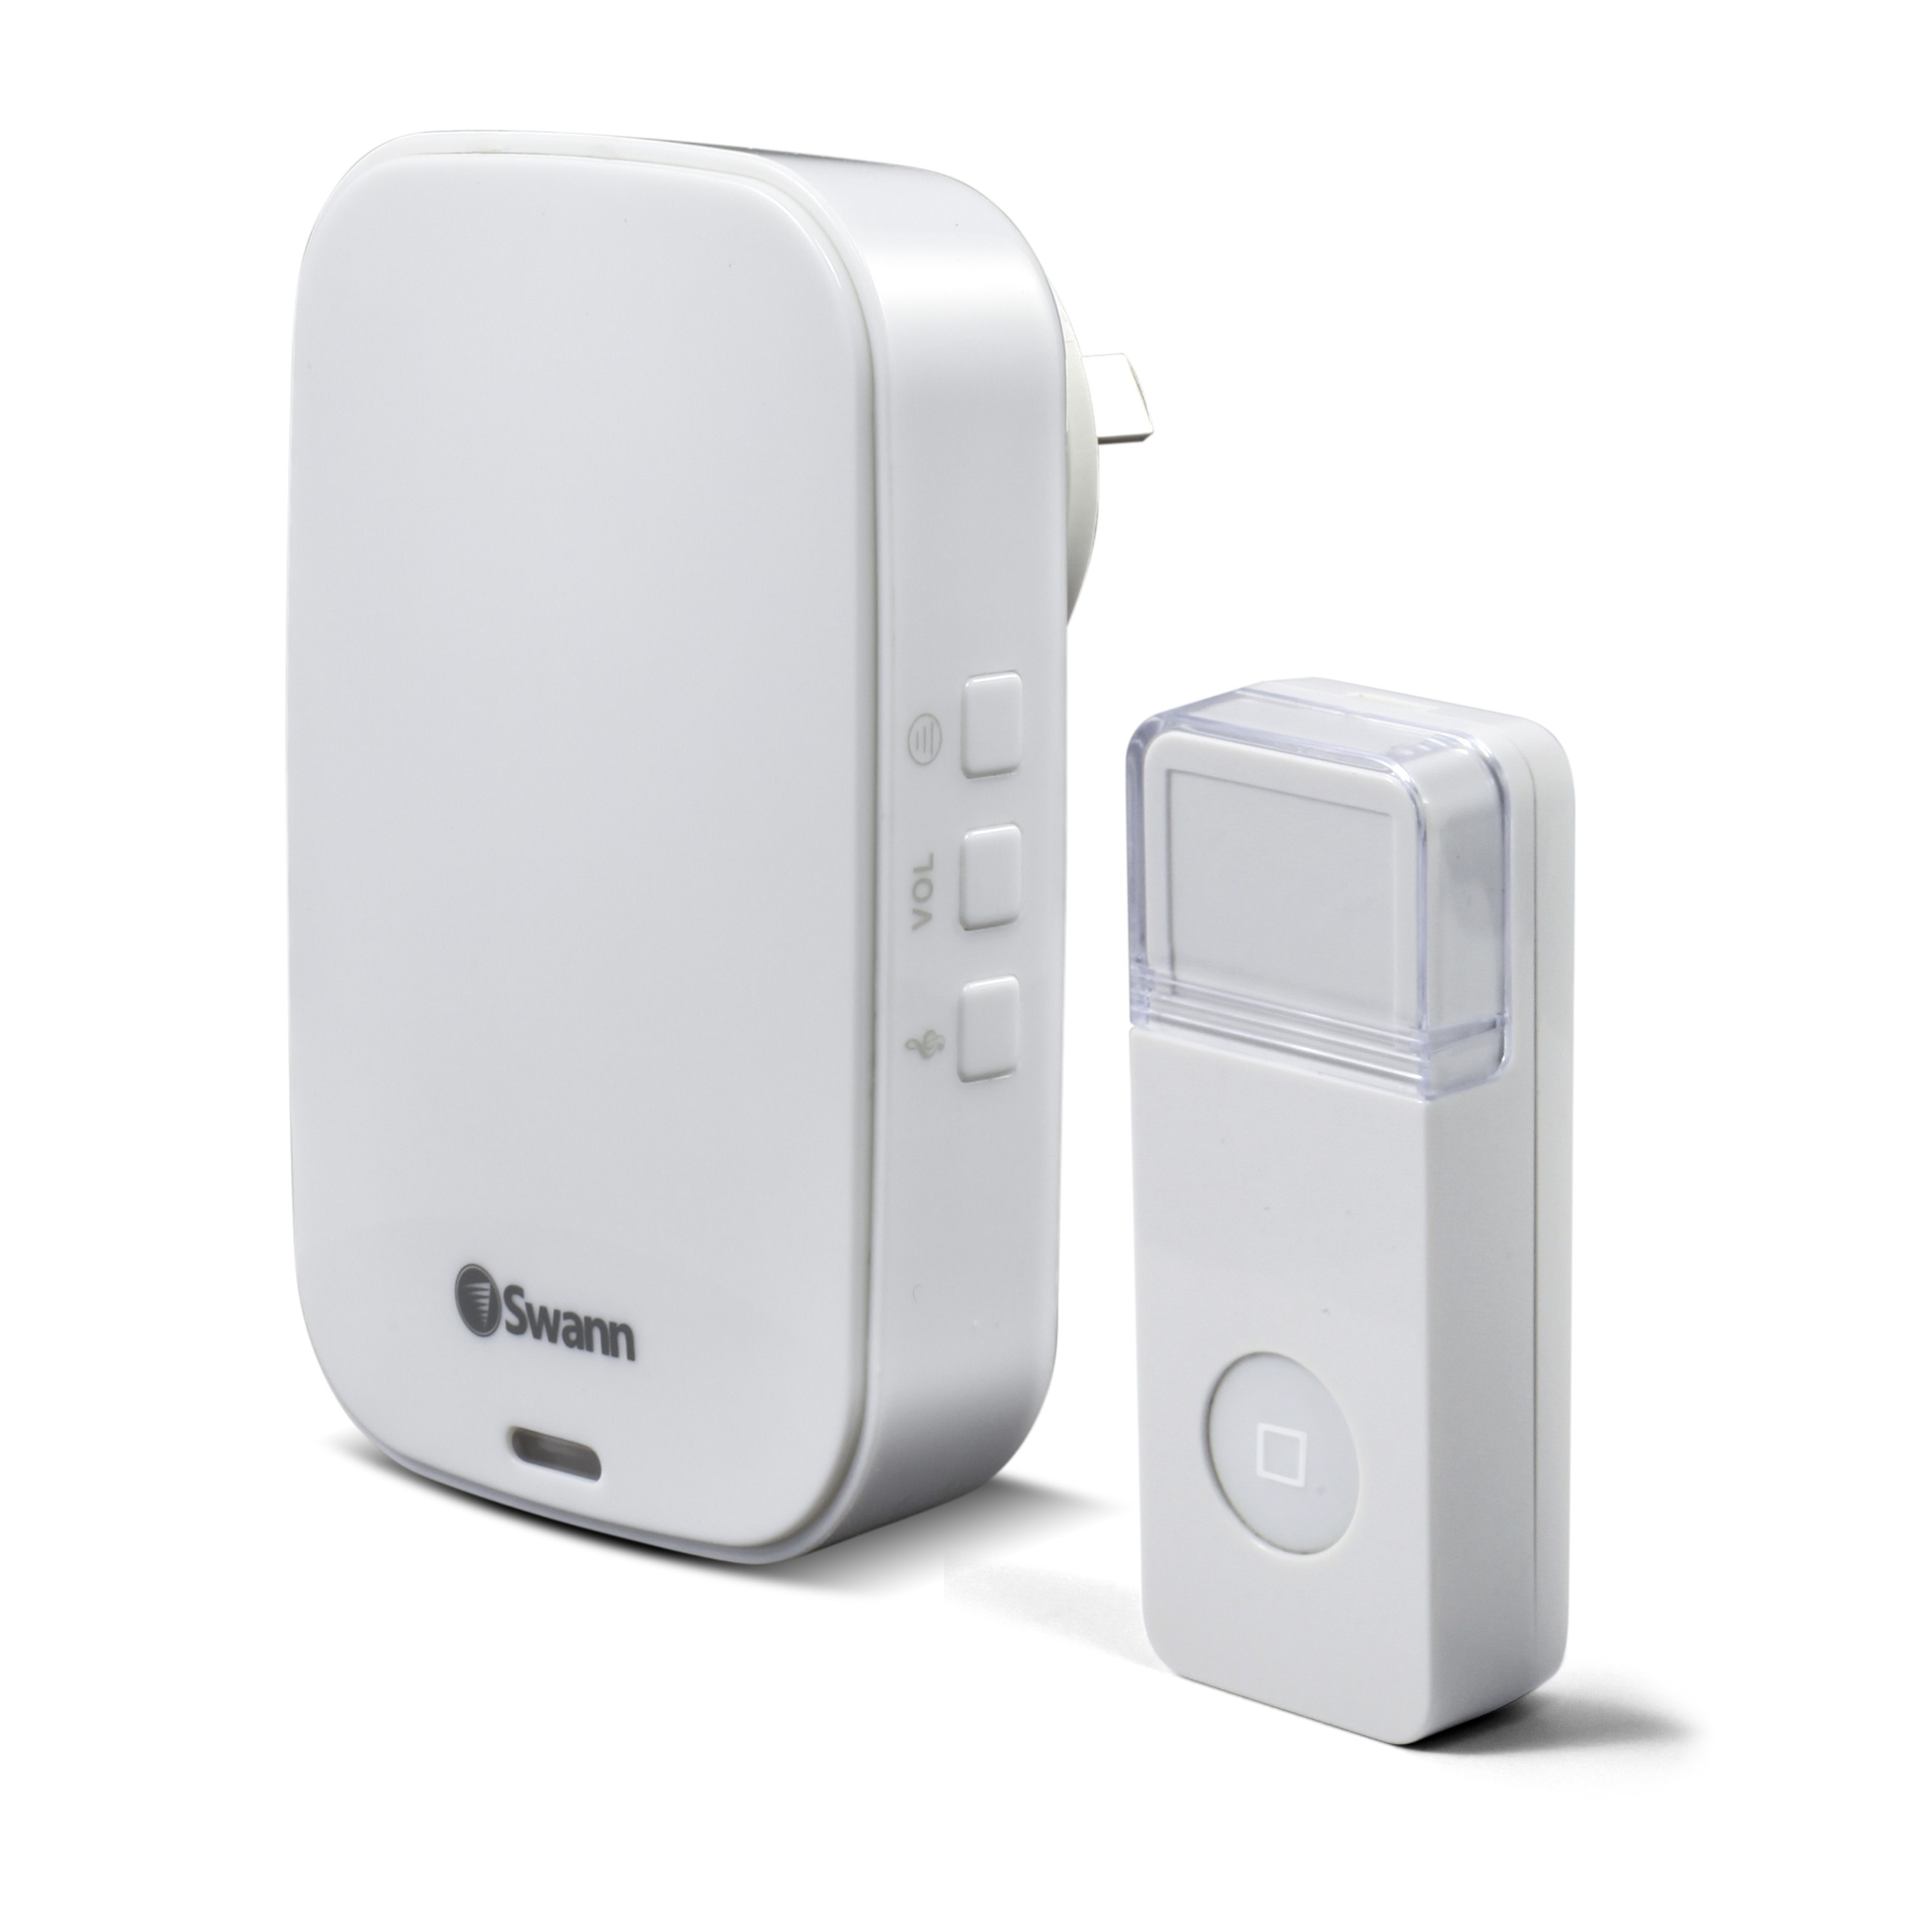 SWHOM-DC822P Wireless Home Doorbell Kit with Plug-in Chime Unit -